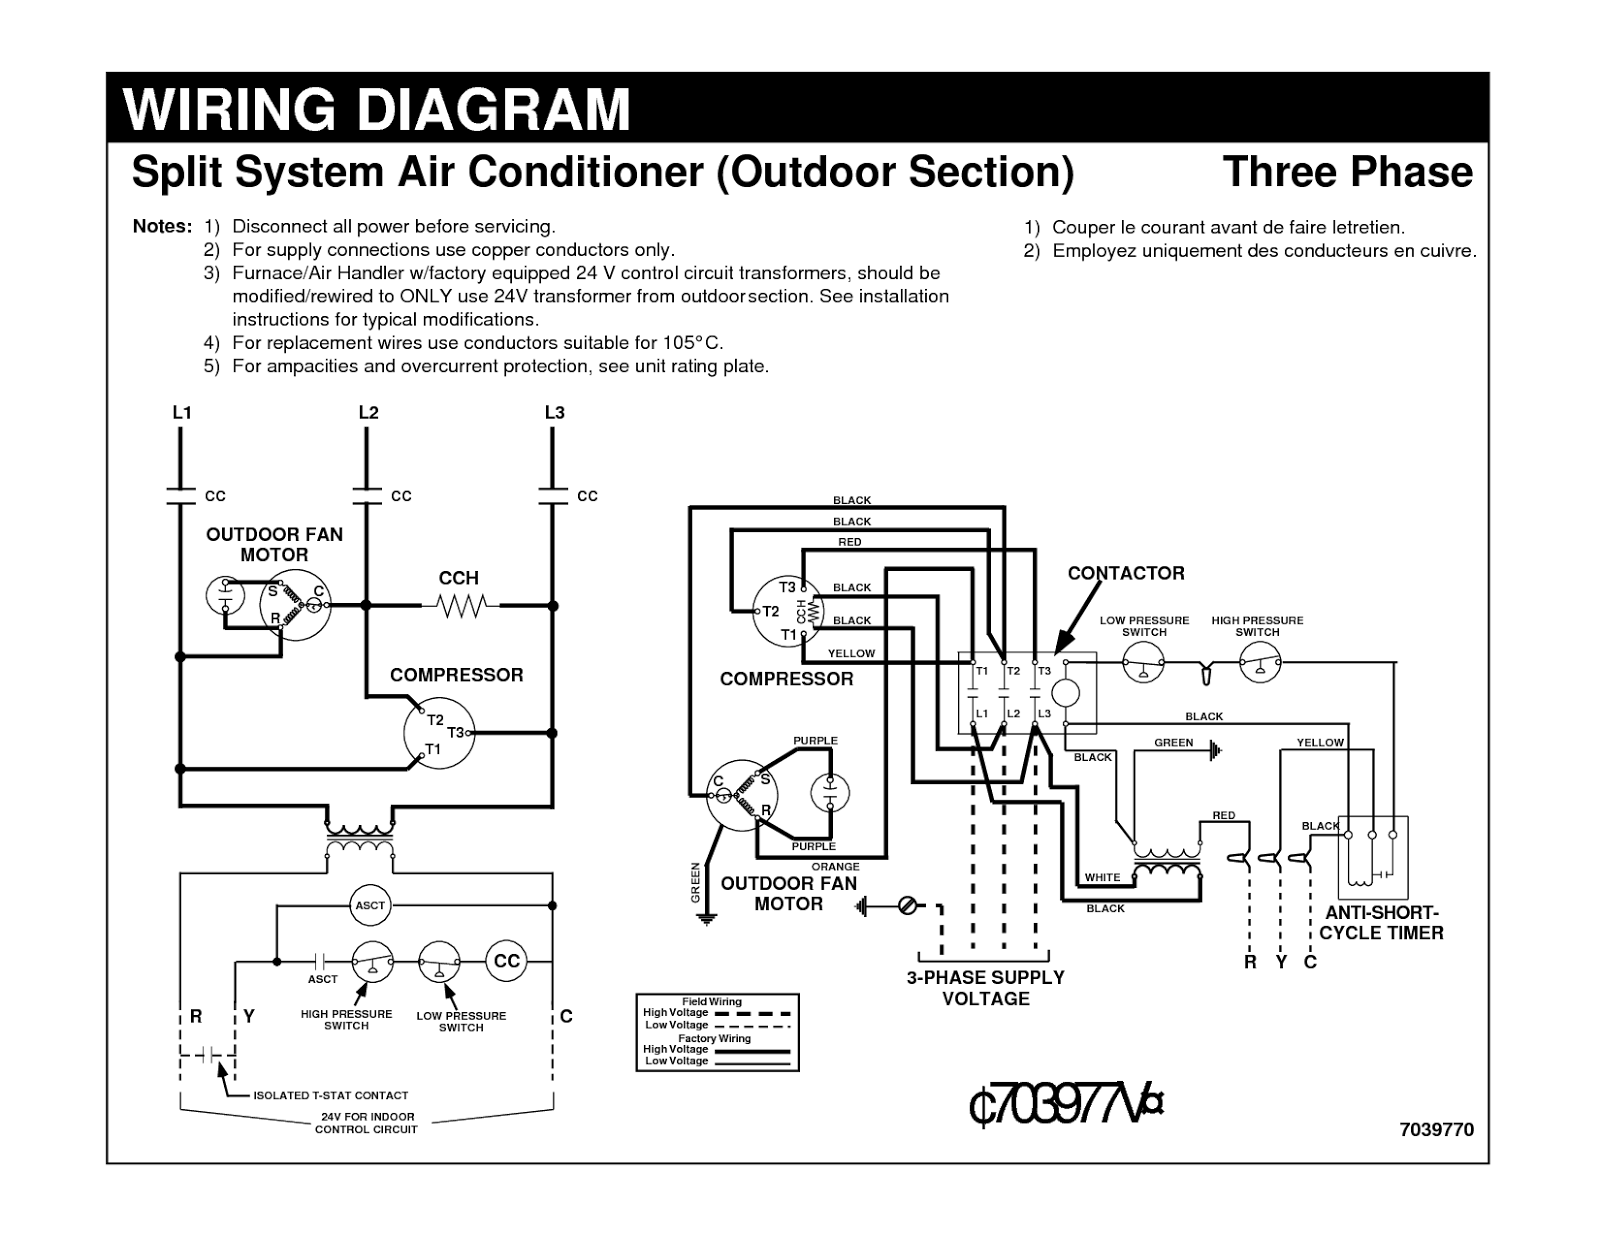 wiring+diagram+in+the+user+manual electrical wiring diagrams for air conditioning systems part one wiring diagram for air conditioner at gsmx.co